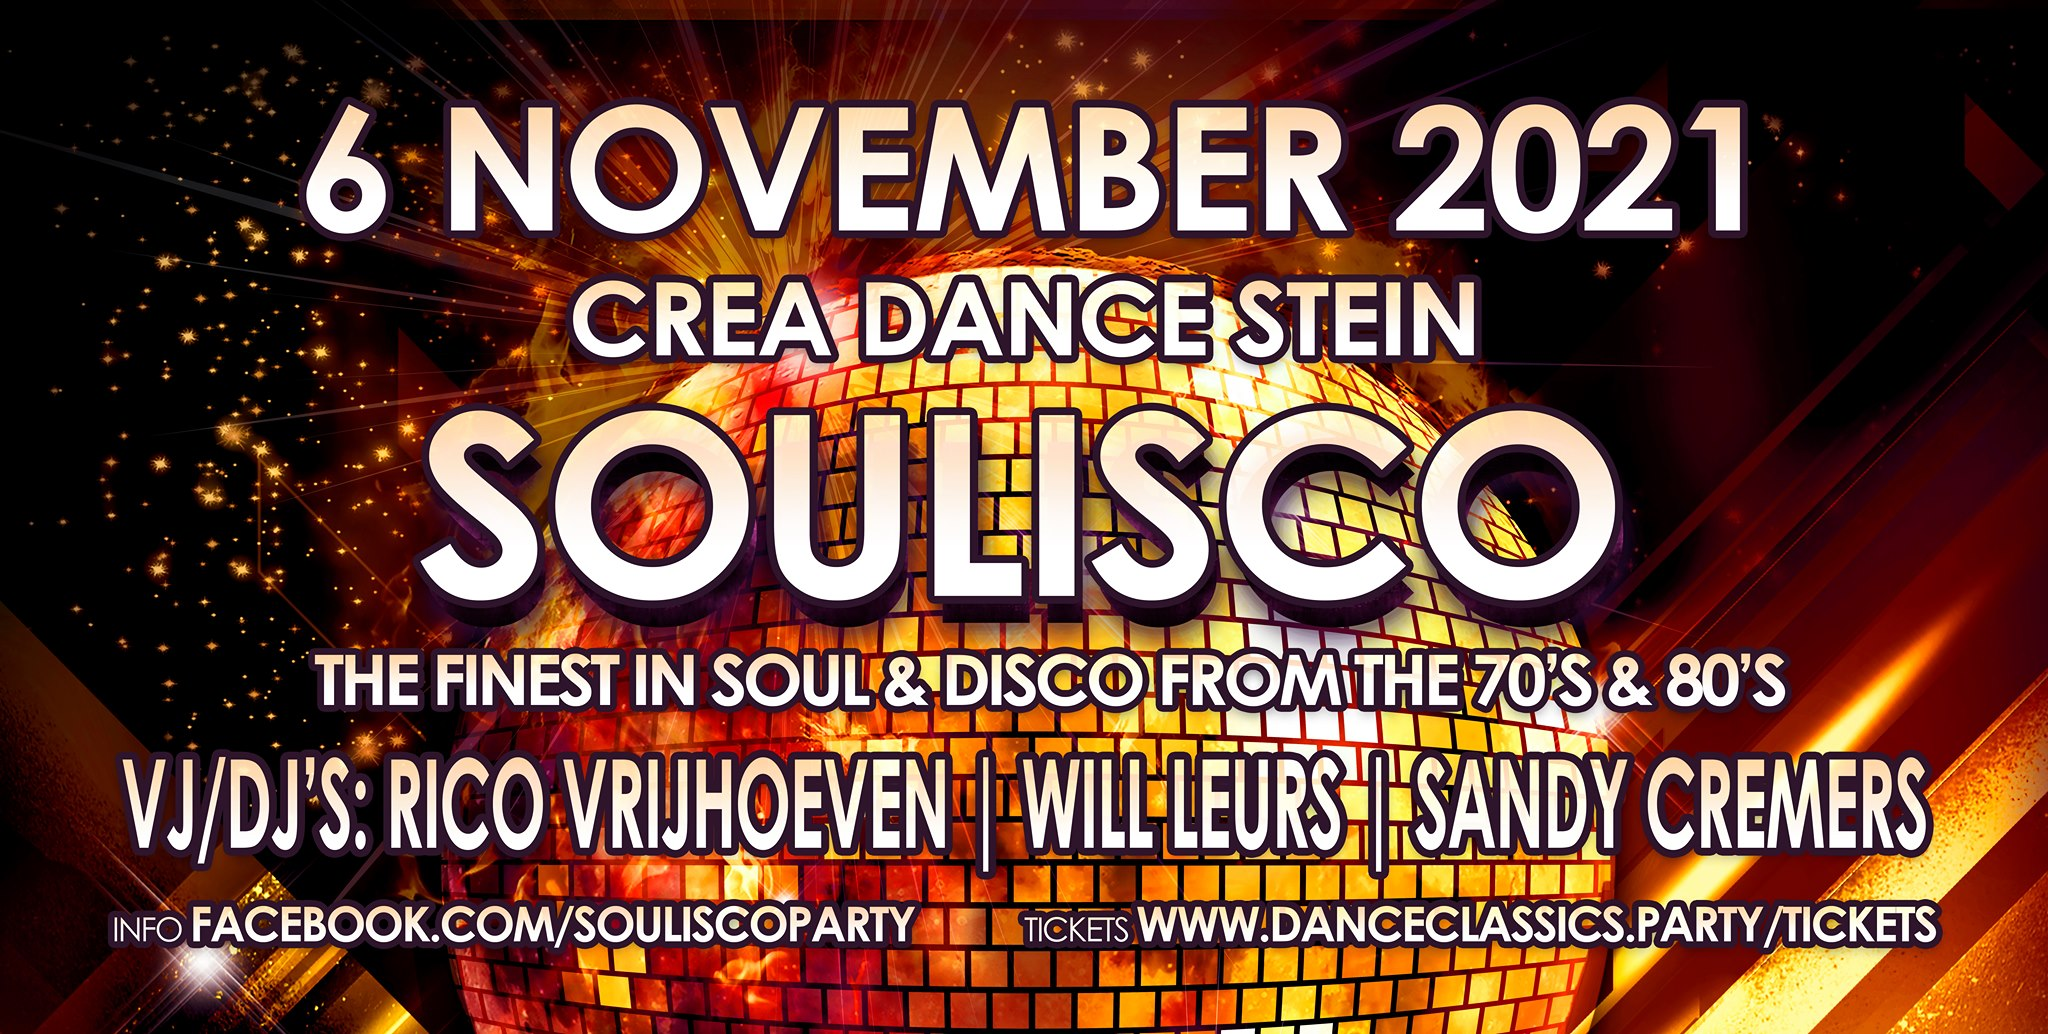 Soulisco party, the finest in Soul & Disco